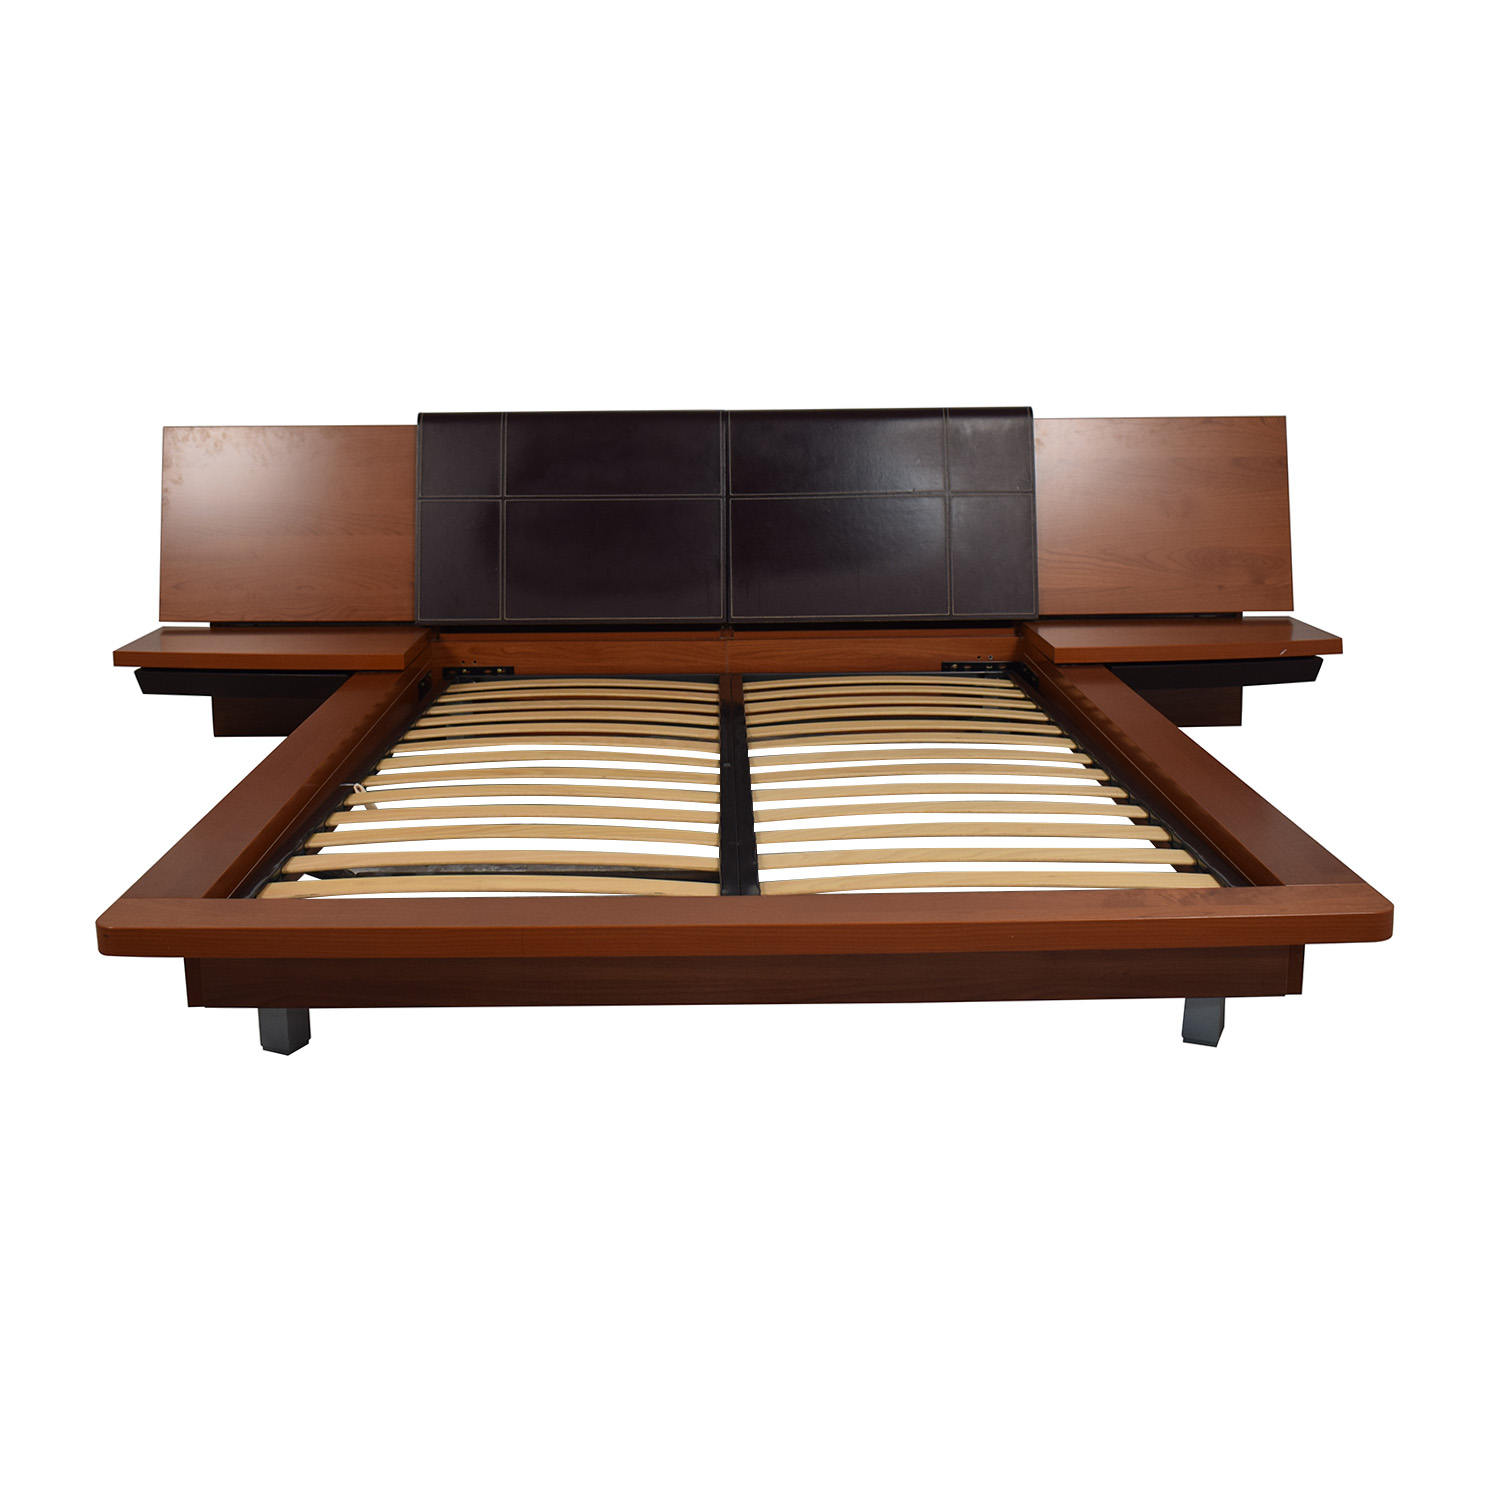 Queen Platform Bed Frame with End Tables / Beds